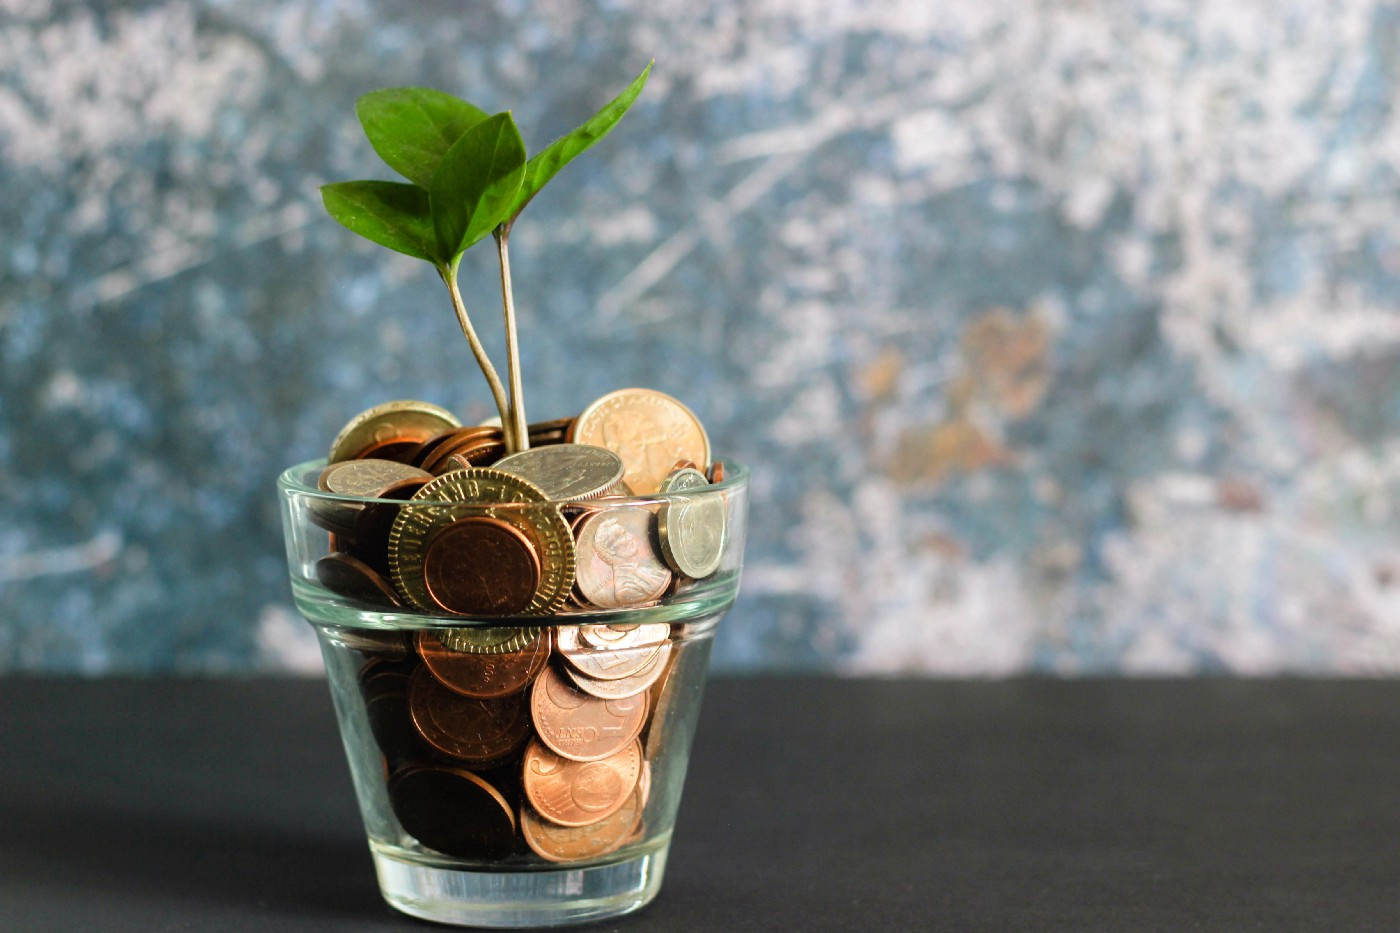 Tree buried in coins, growing in a cup